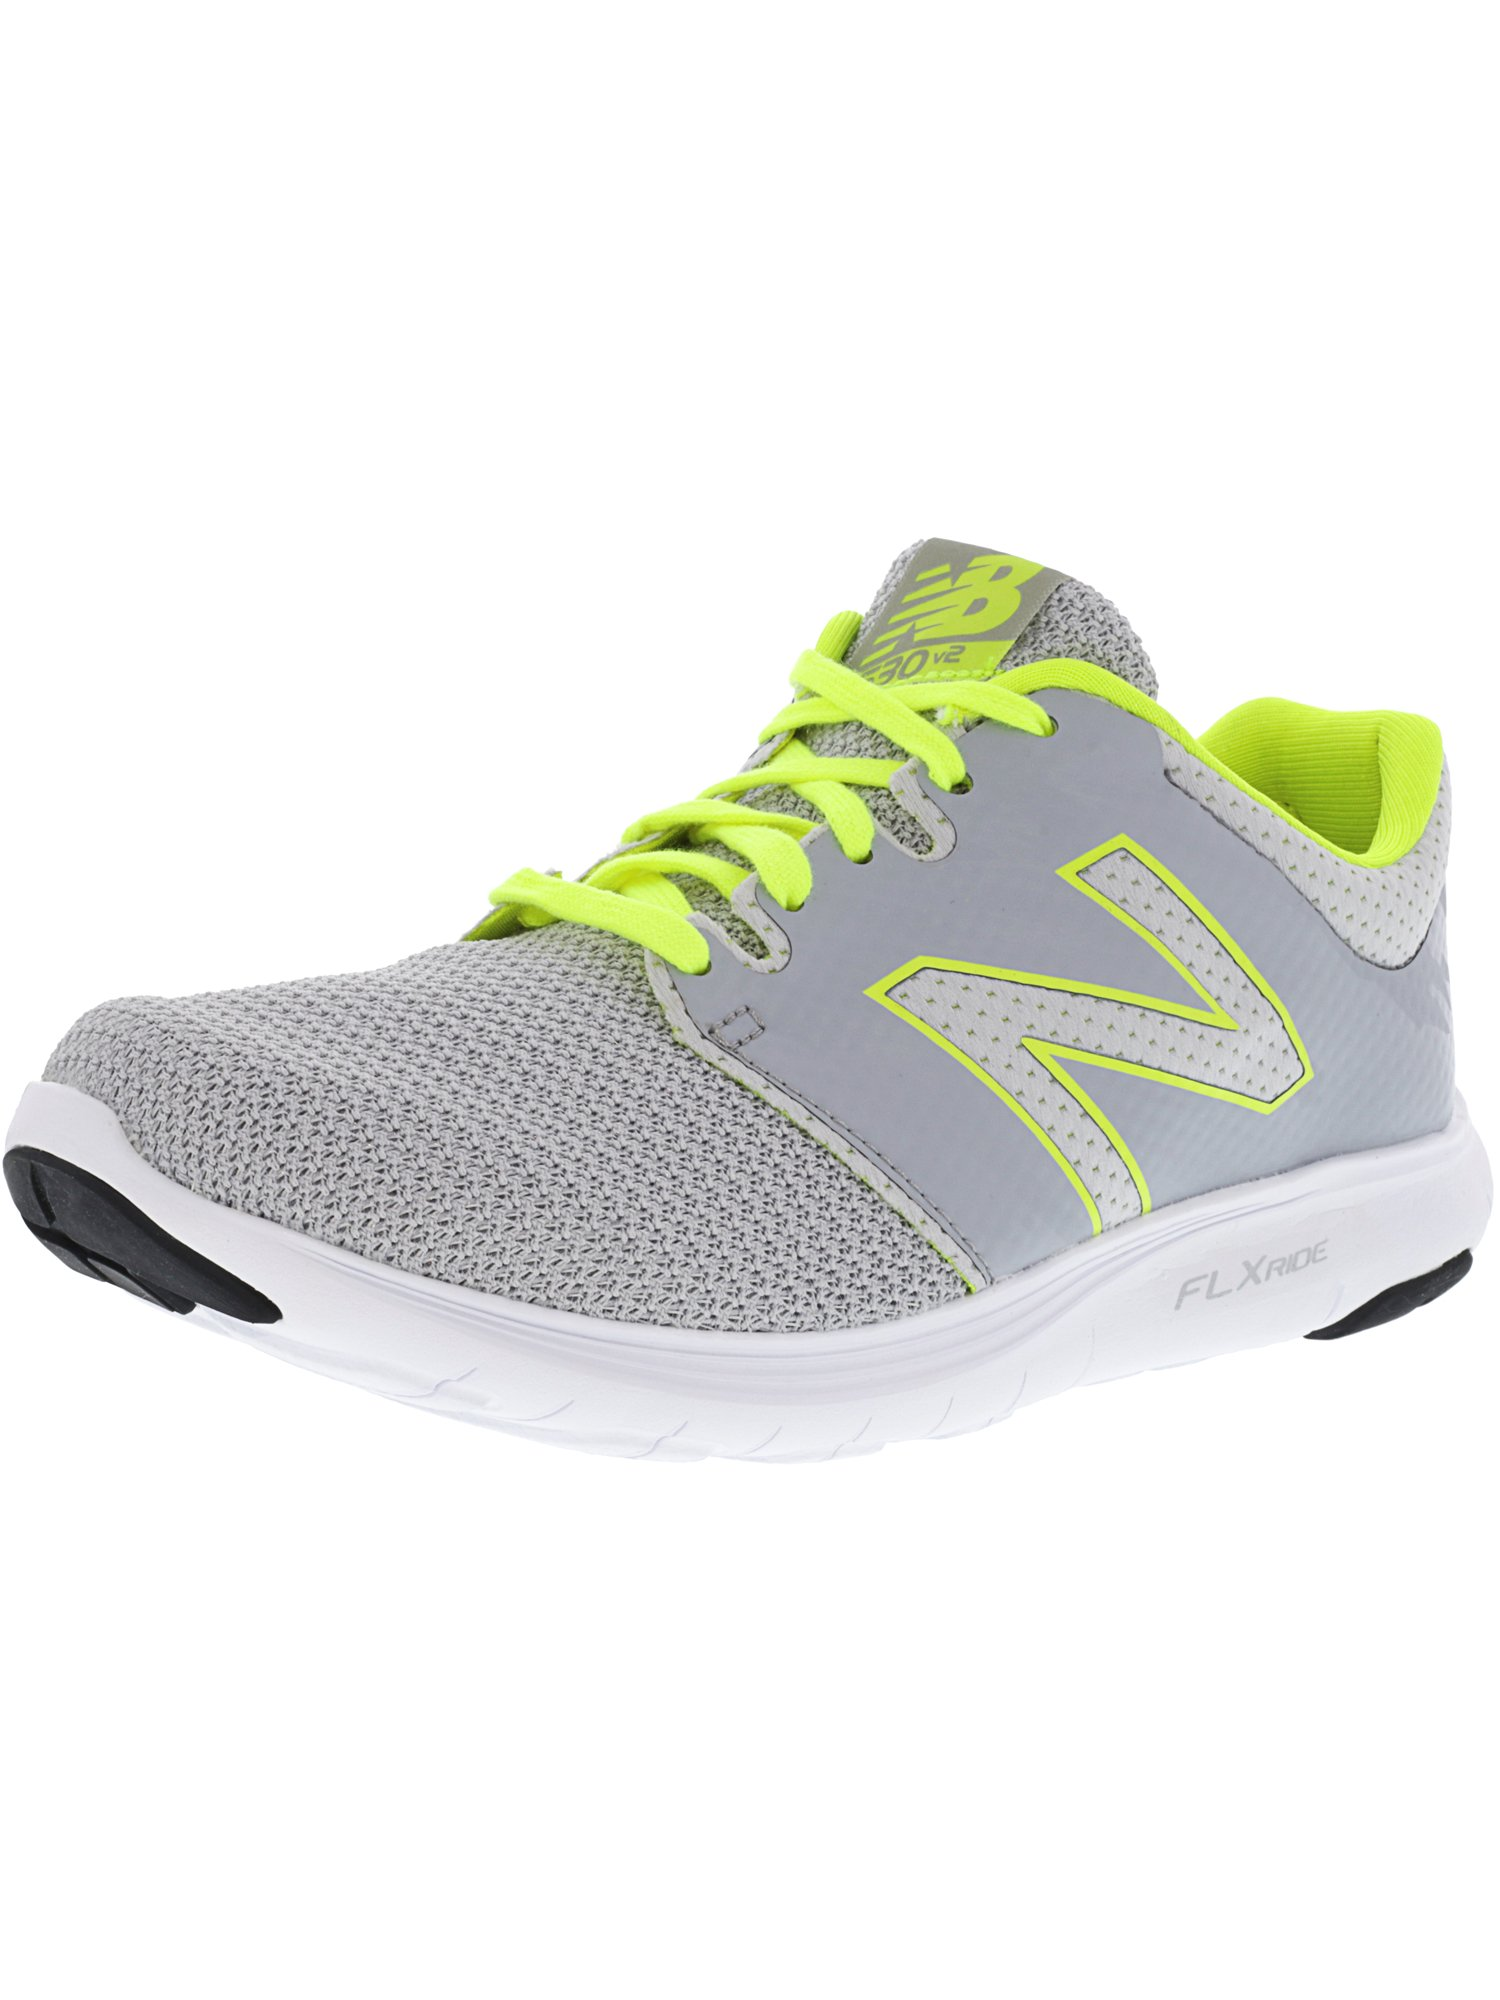 New Balance Women's W530 Ly2 Ankle-High Running Shoe - 5.5W